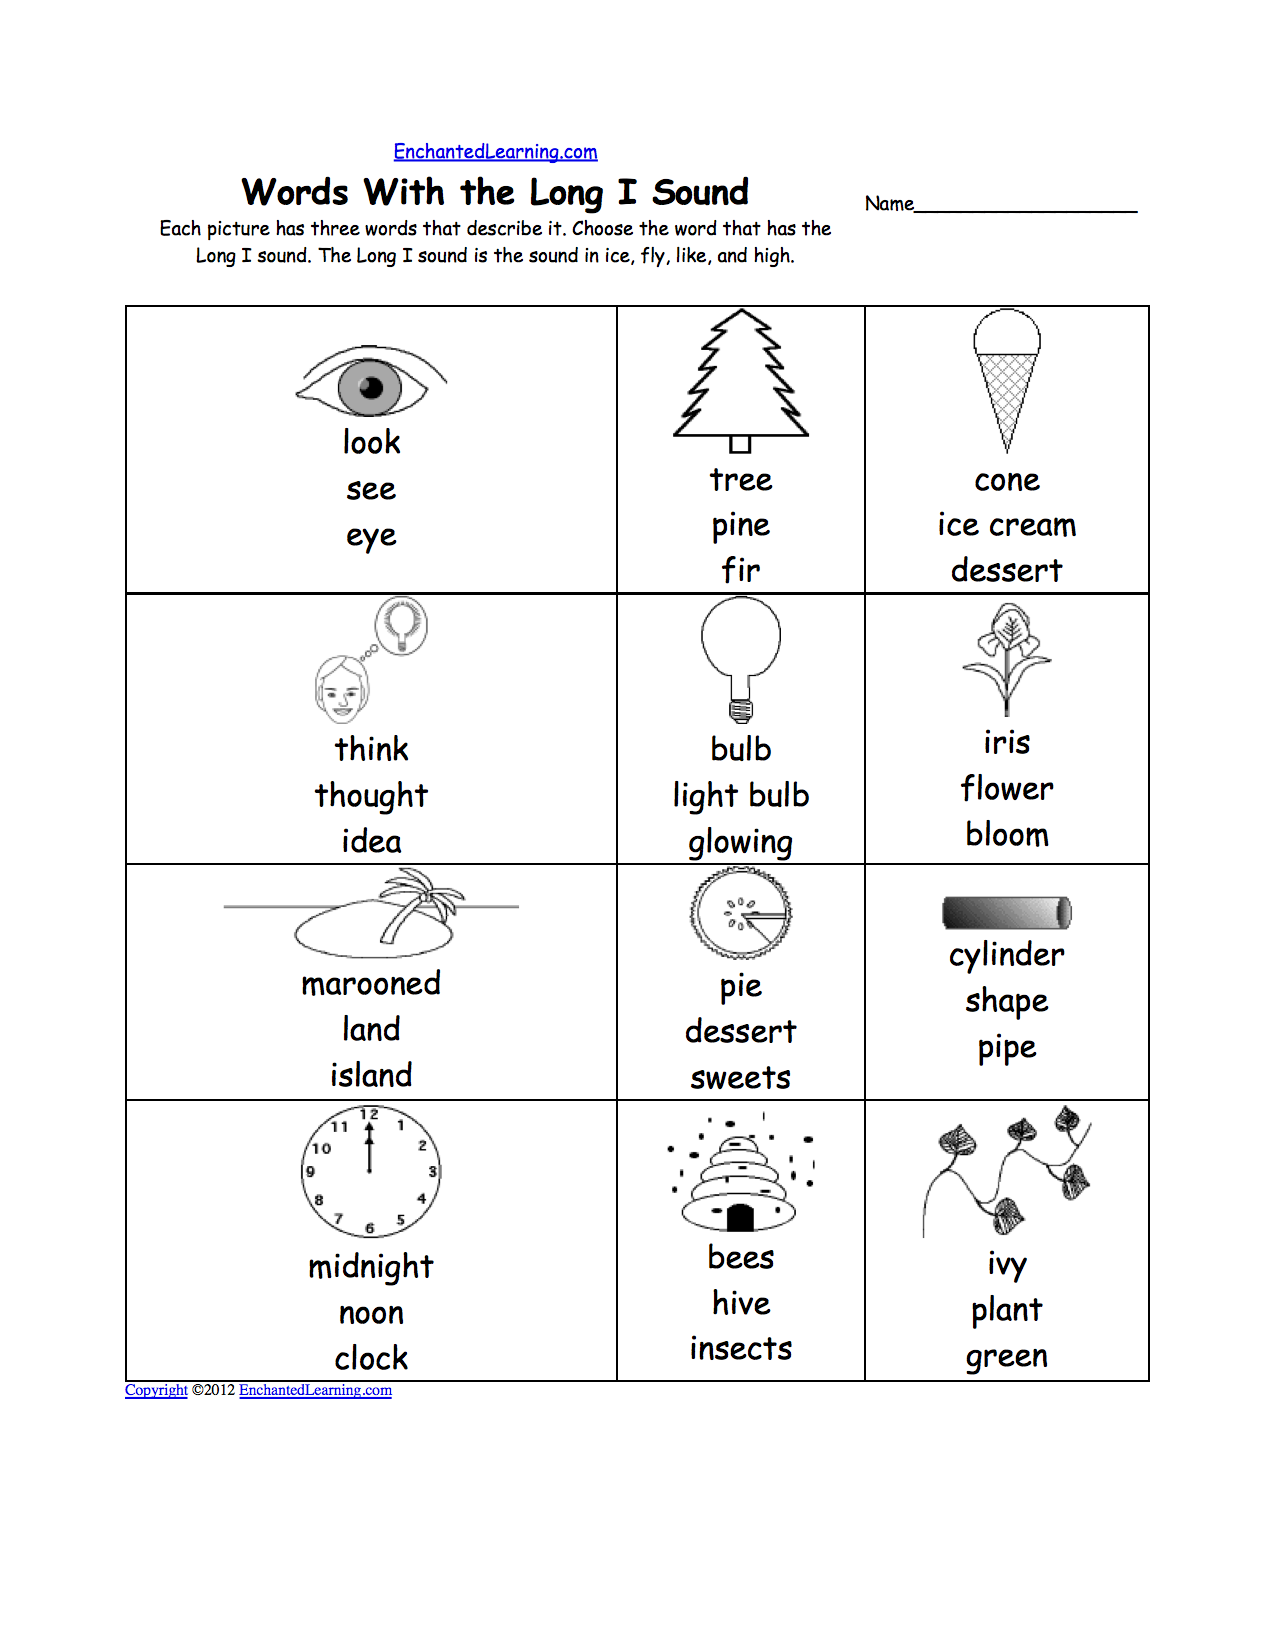 Phonics Worksheets Multiple Choice Worksheets To Print Enchantedlearning Com